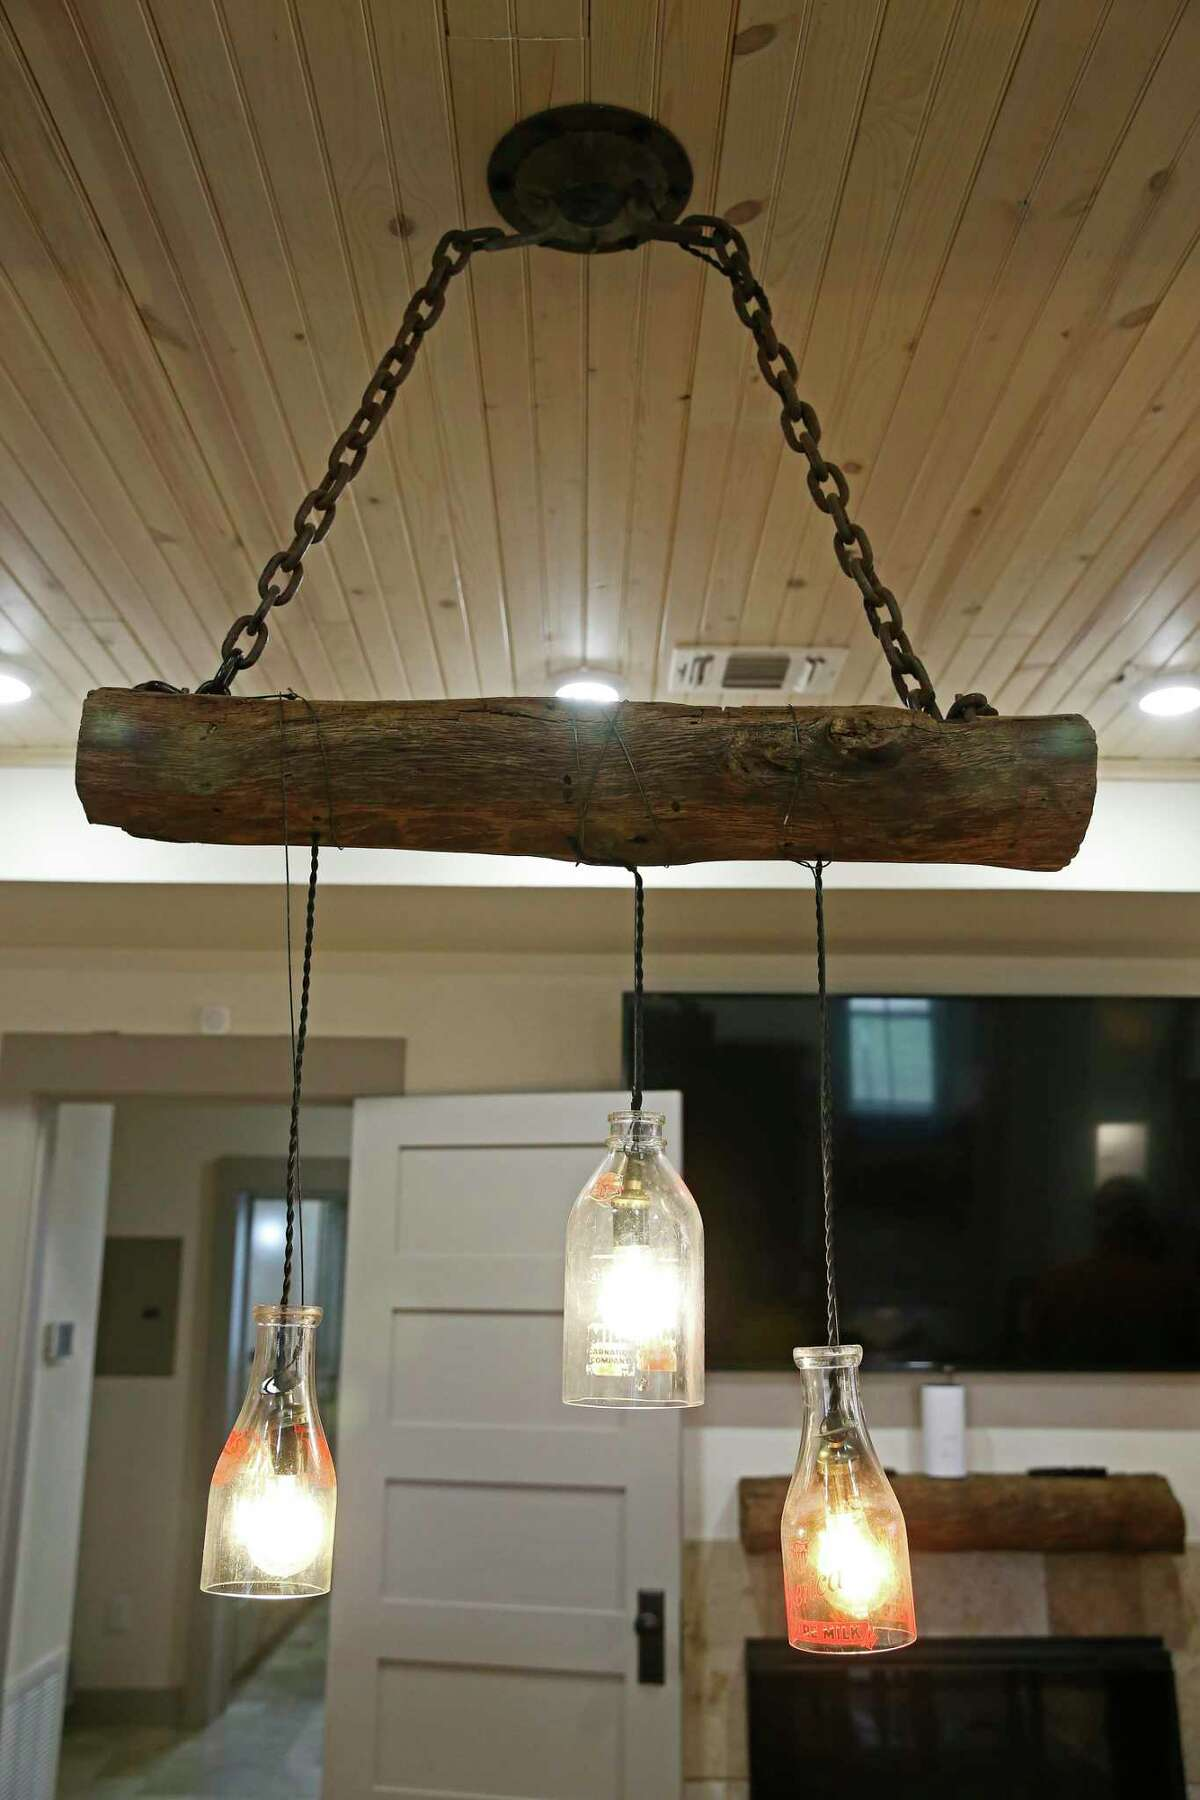 The Culpeppers repurposed many artifacts they found on the property. The chandelier over the dining room, for example, is made of three glass milk bottles cut in half and hung from a large hunk of wood. It's suspended by a thick iron chain Ben dug up in the backyard.